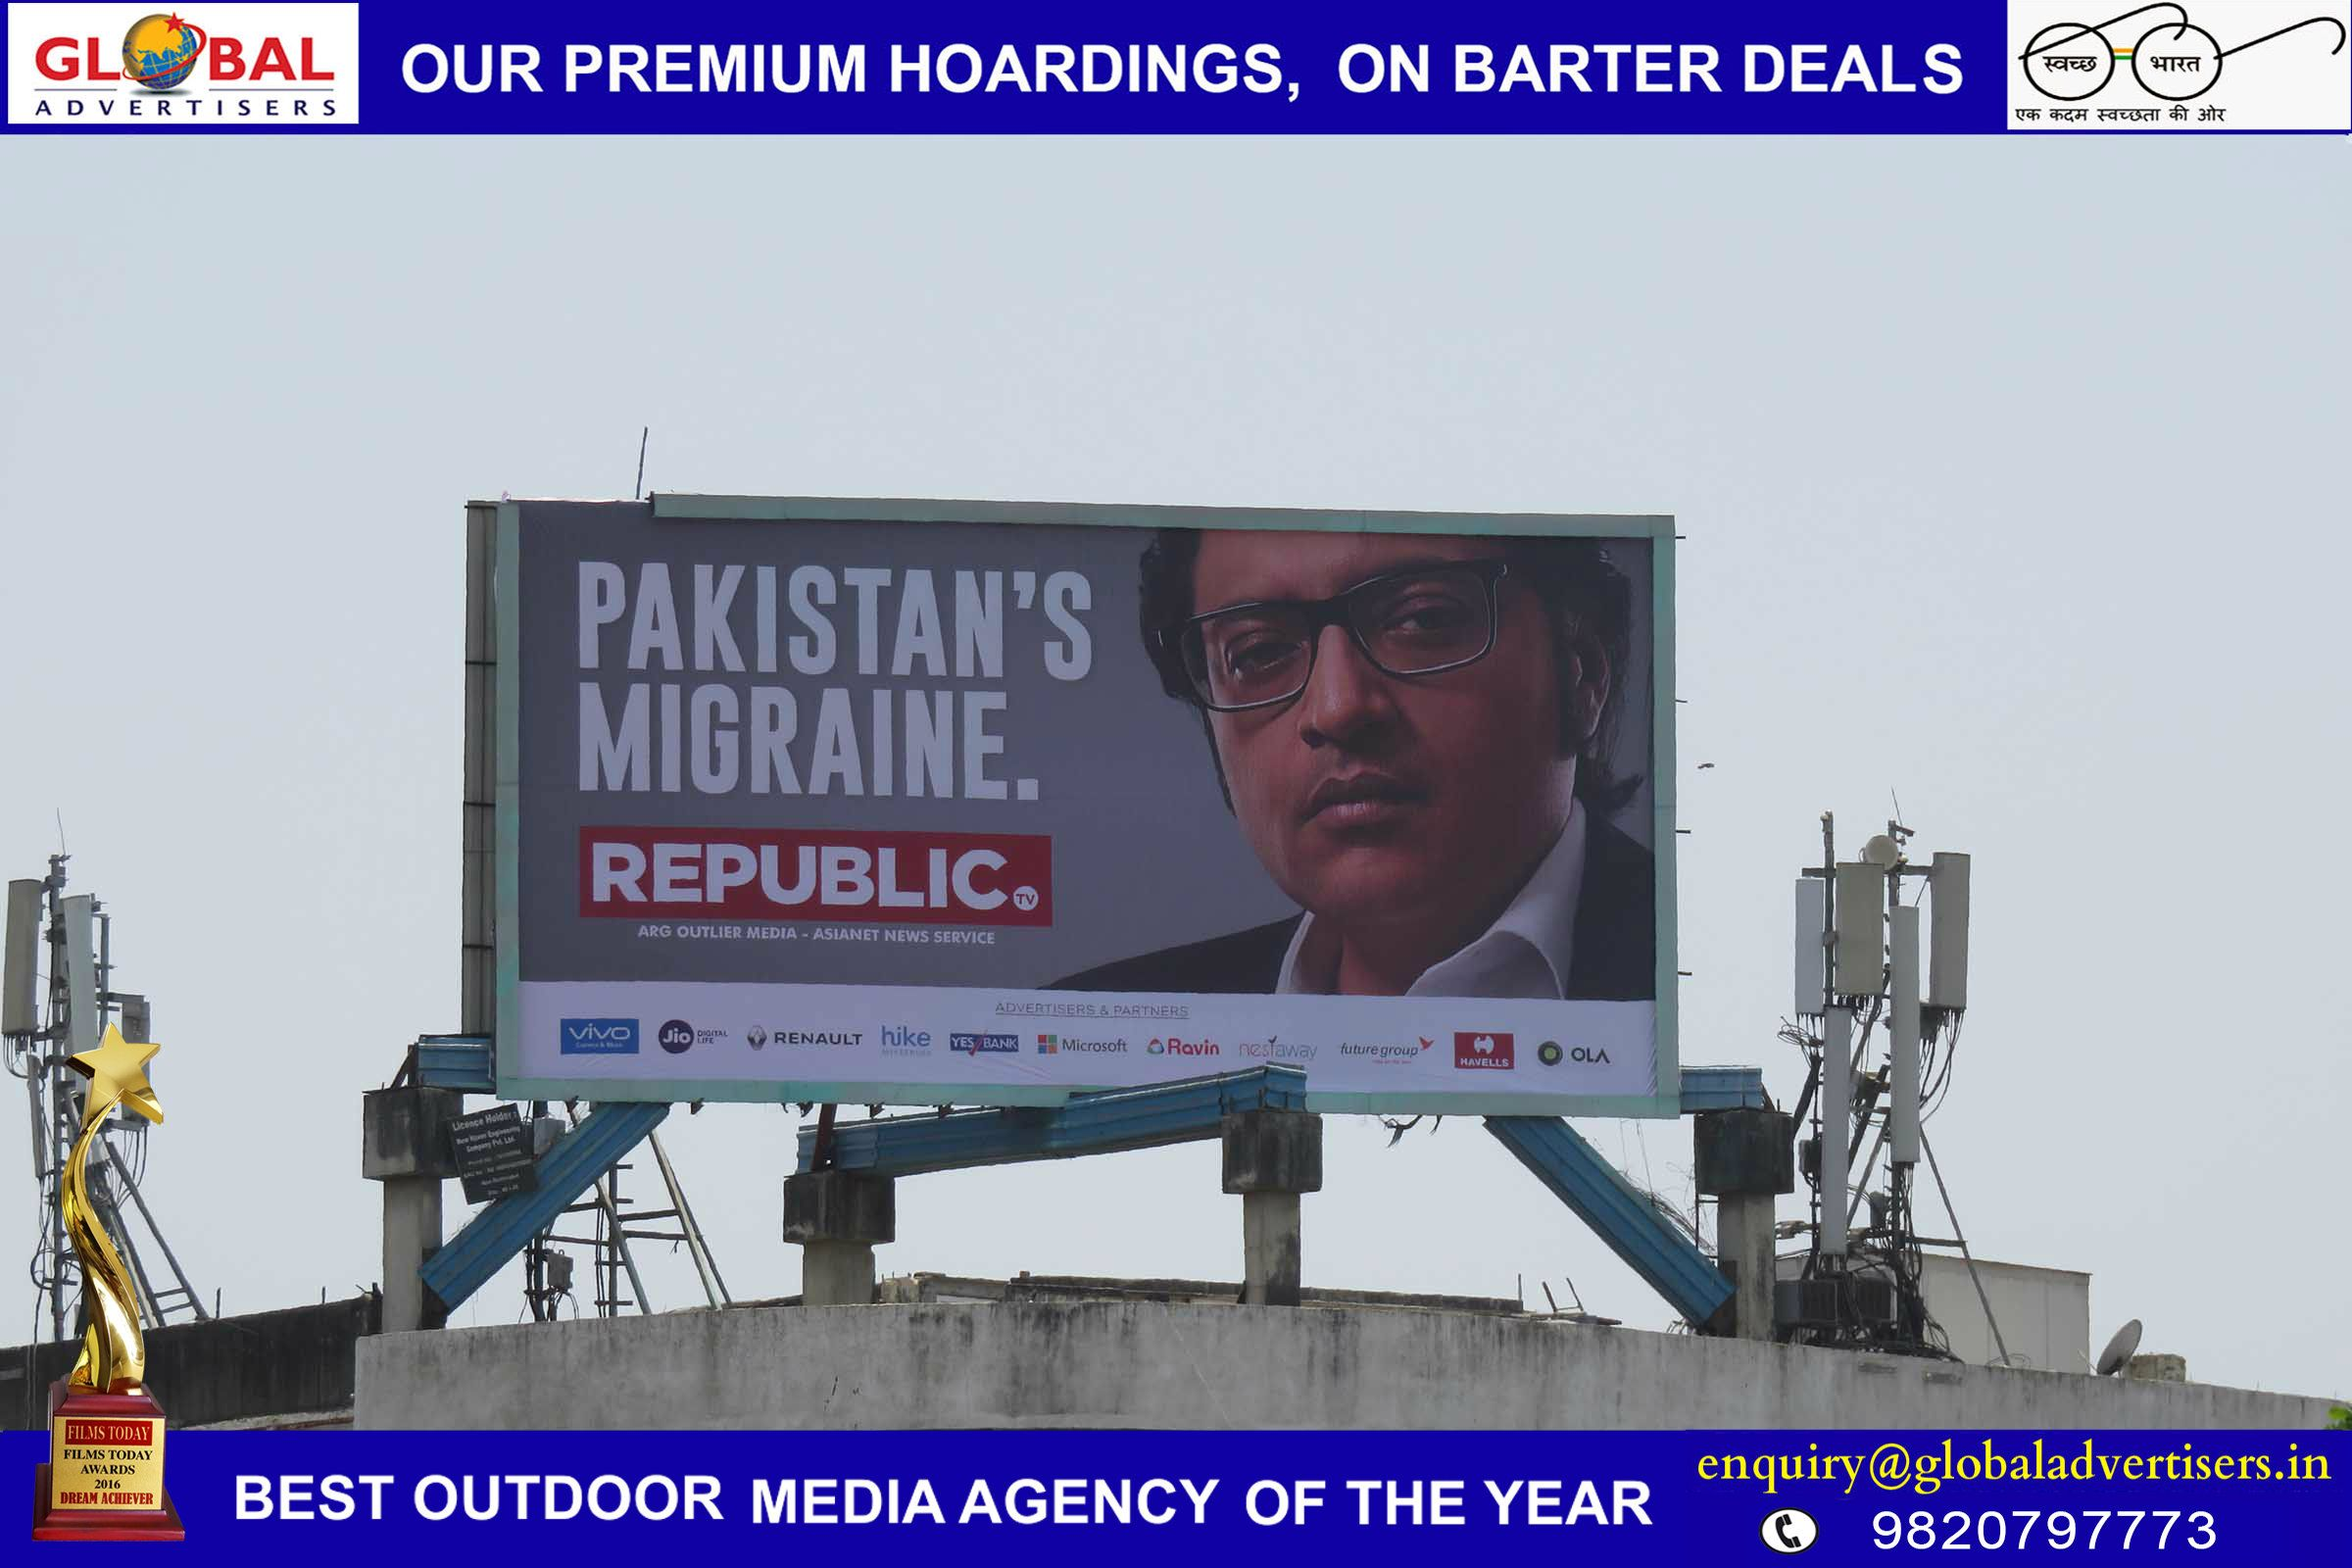 Arnab Goswami S Republic Tv Rolls Out Nation Still Wants To Know On Billboards In All Over Mumbai Ooh Campaign By Global Advertisers Outdoor Advertising